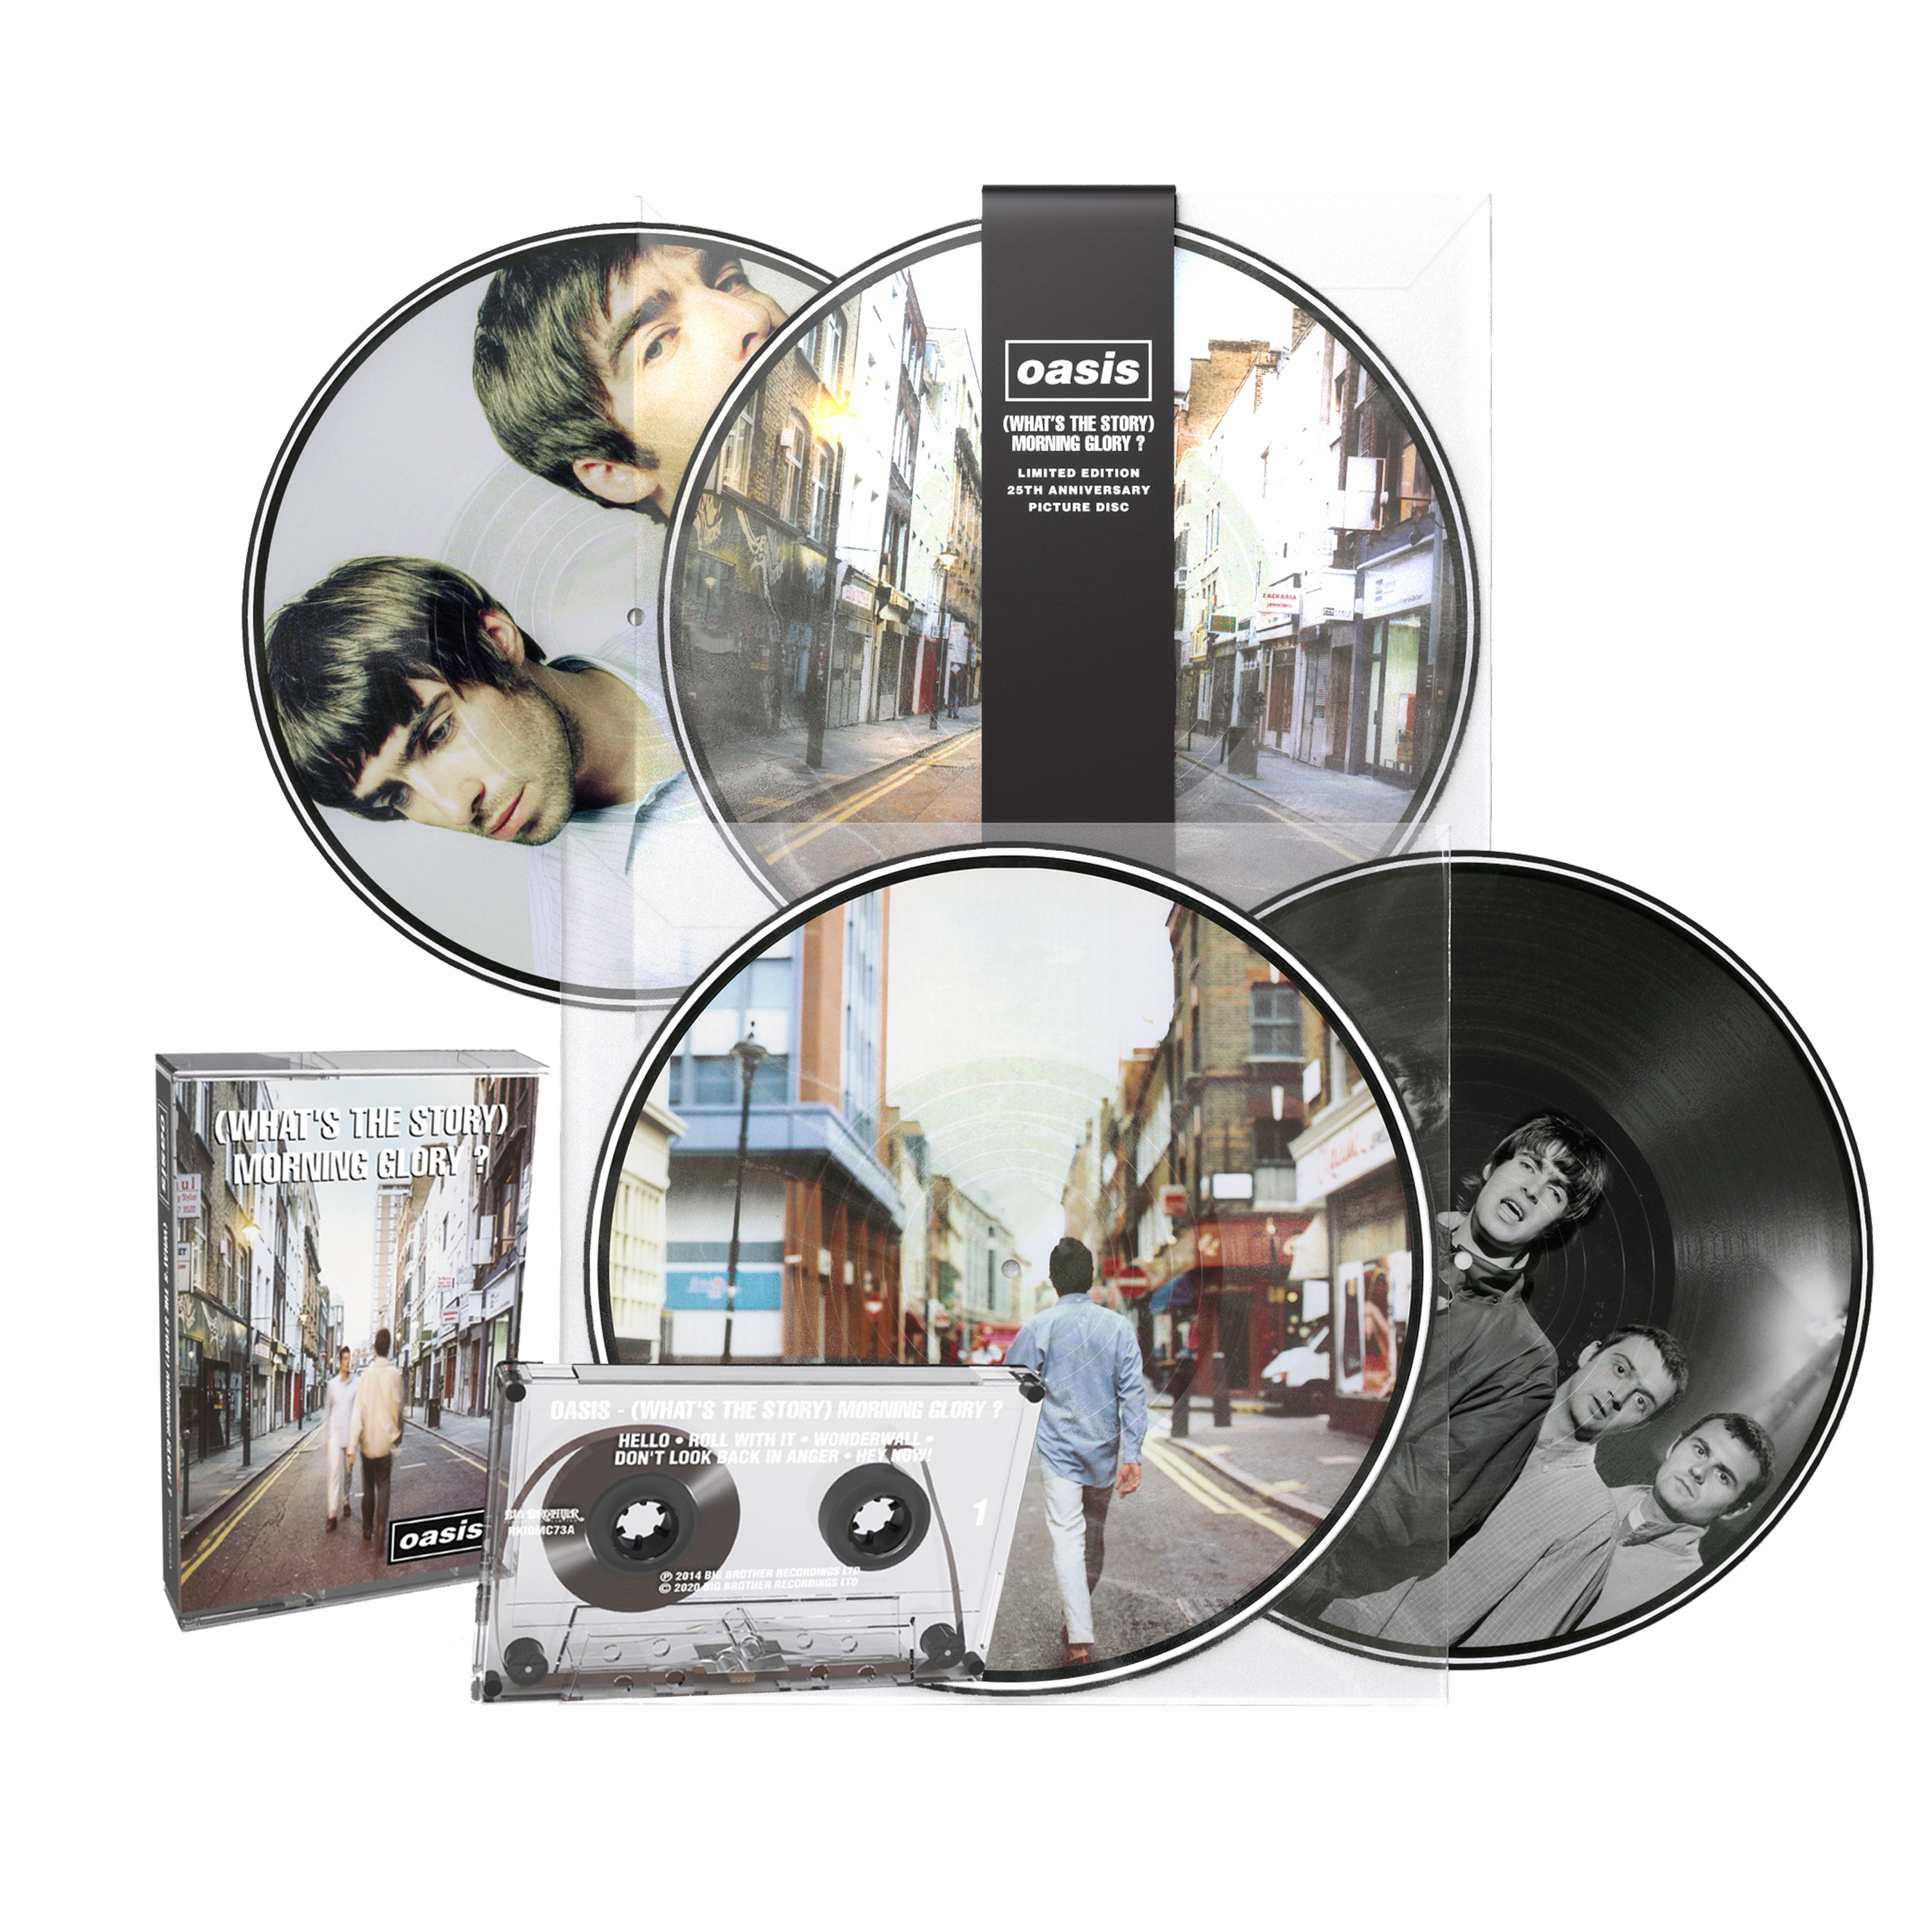 Buy Online Oasis - (What's The Story) Morning Glory? - 25th Anniversary Vinyl Picture Disc + Cassette + Wonderwall Lyric Sheet